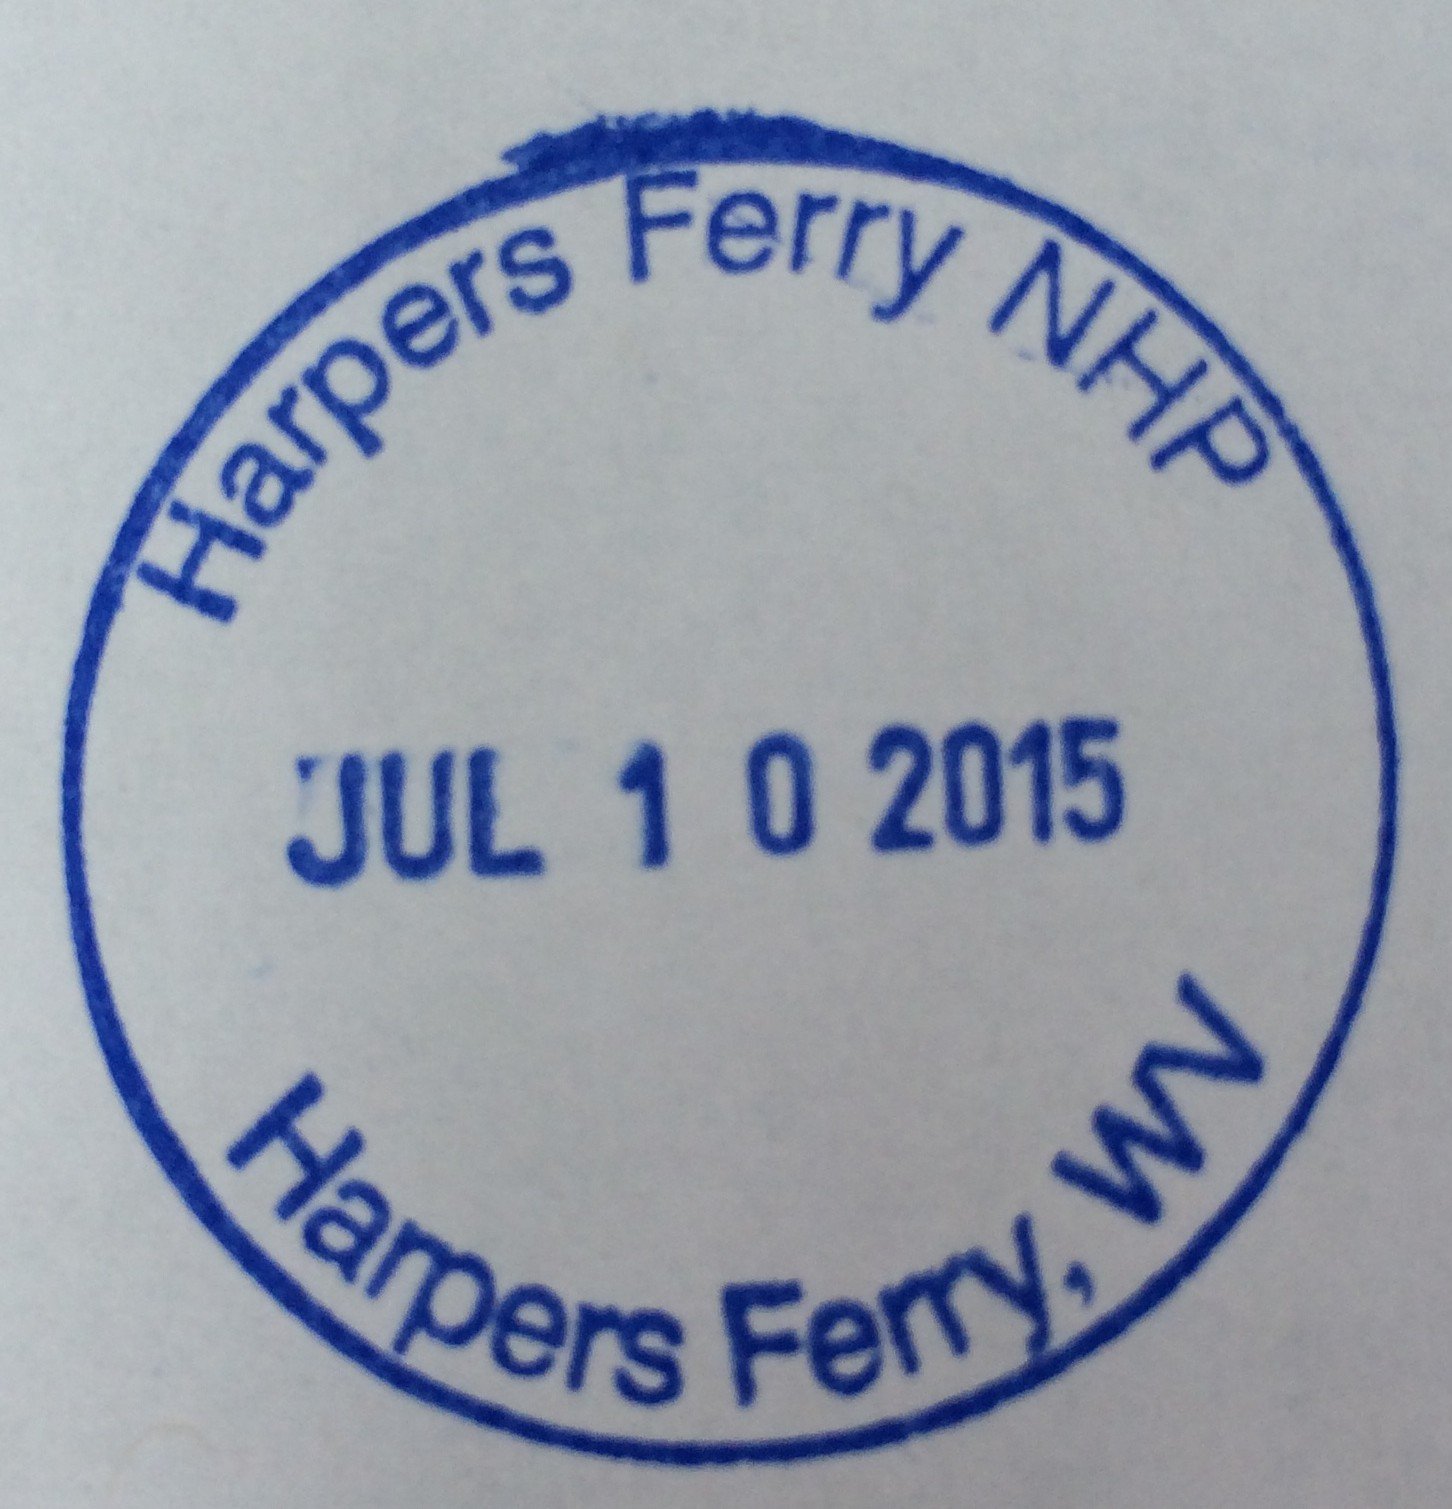 The official stamp obtained at the Harper's Ferry visitor's center where we parked our car for three days